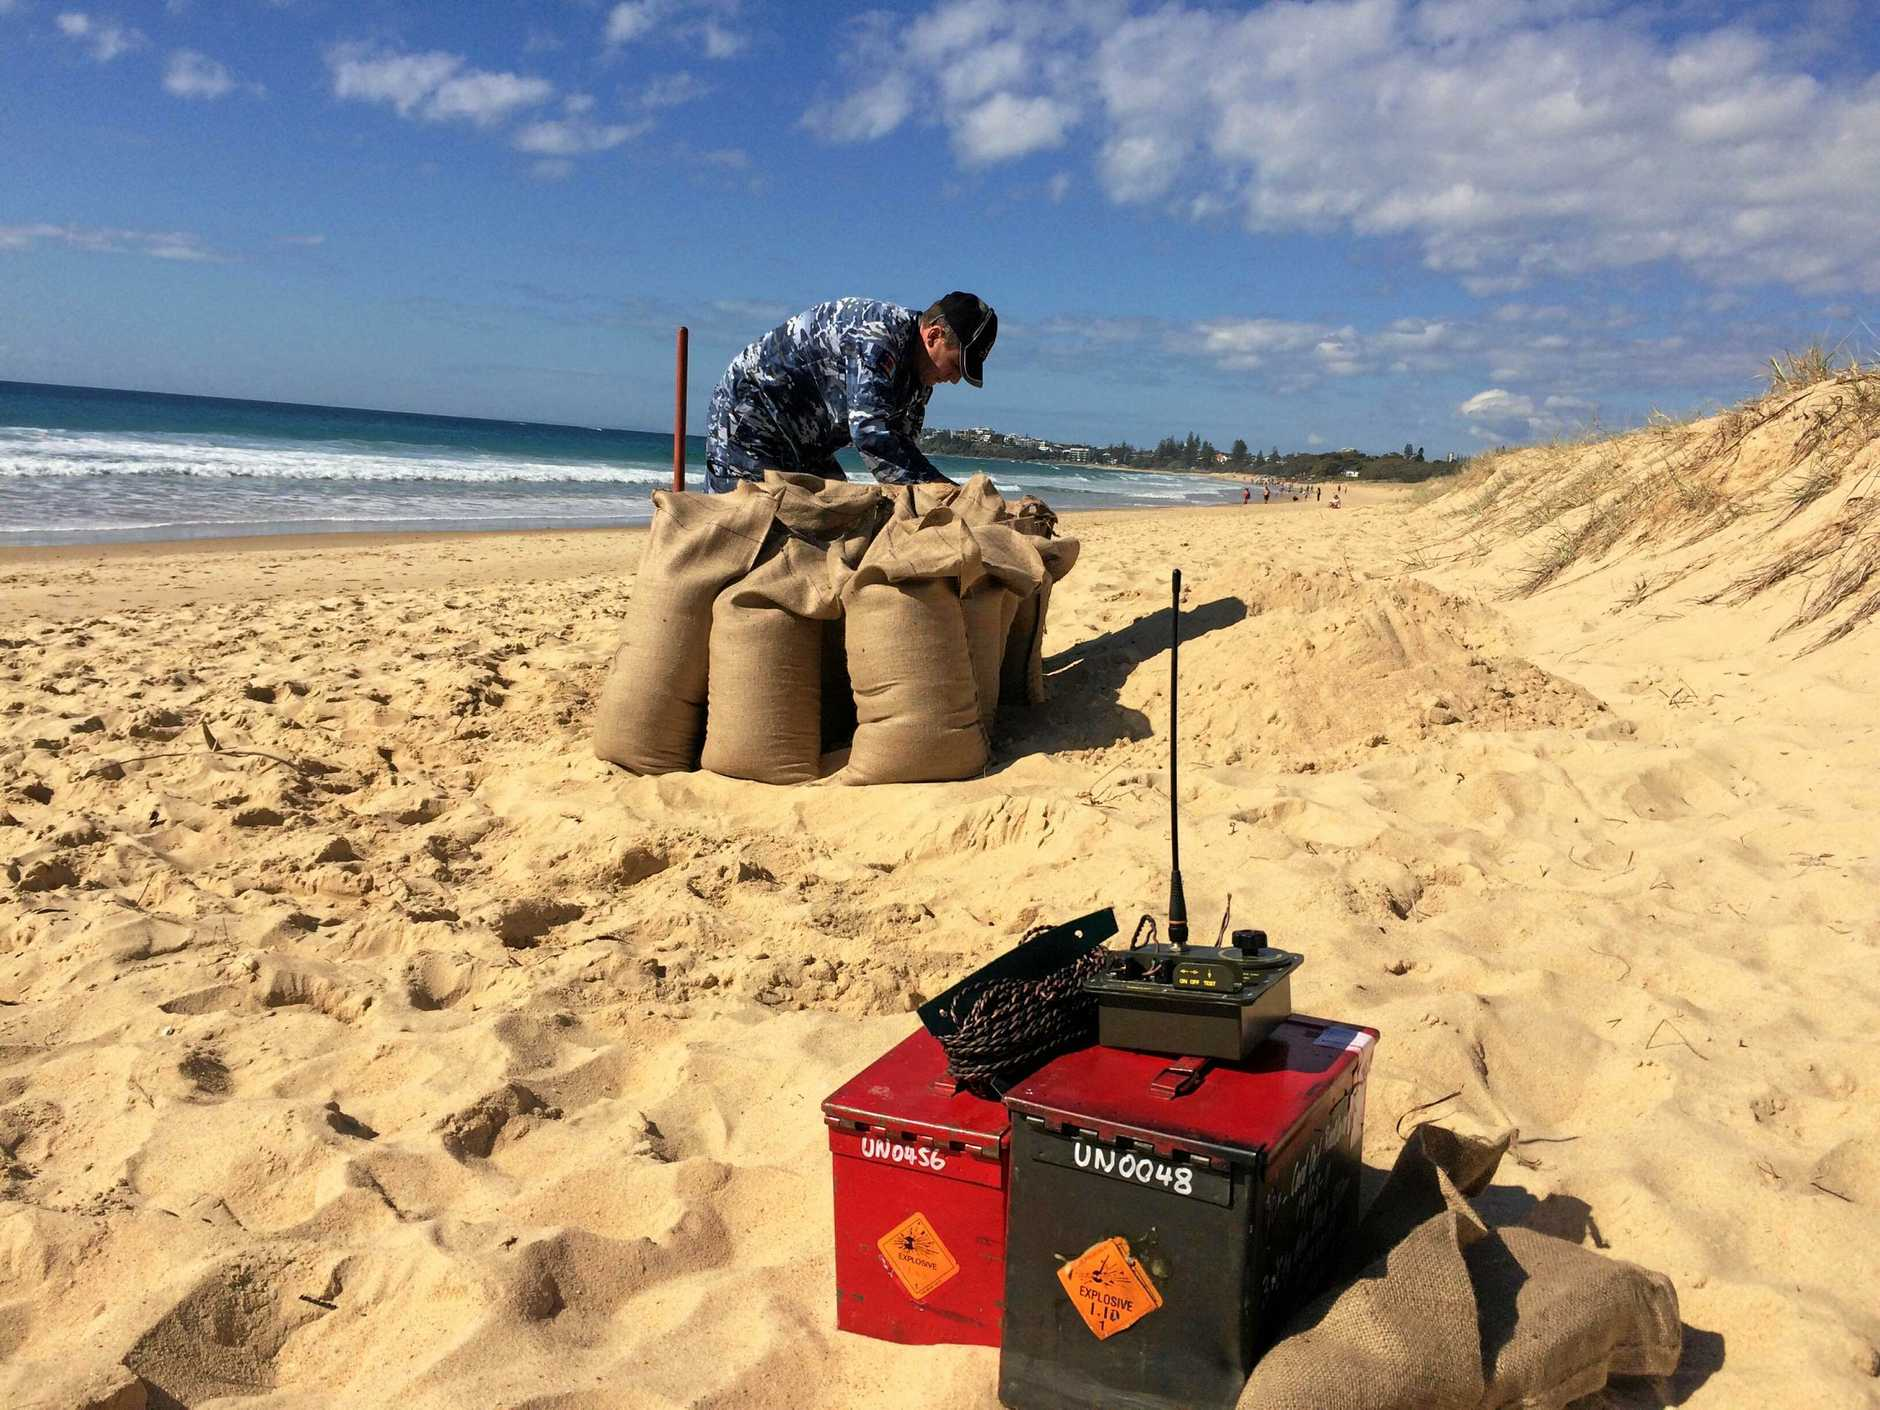 Air Force warrant officer Damien Holding prepares to detonate